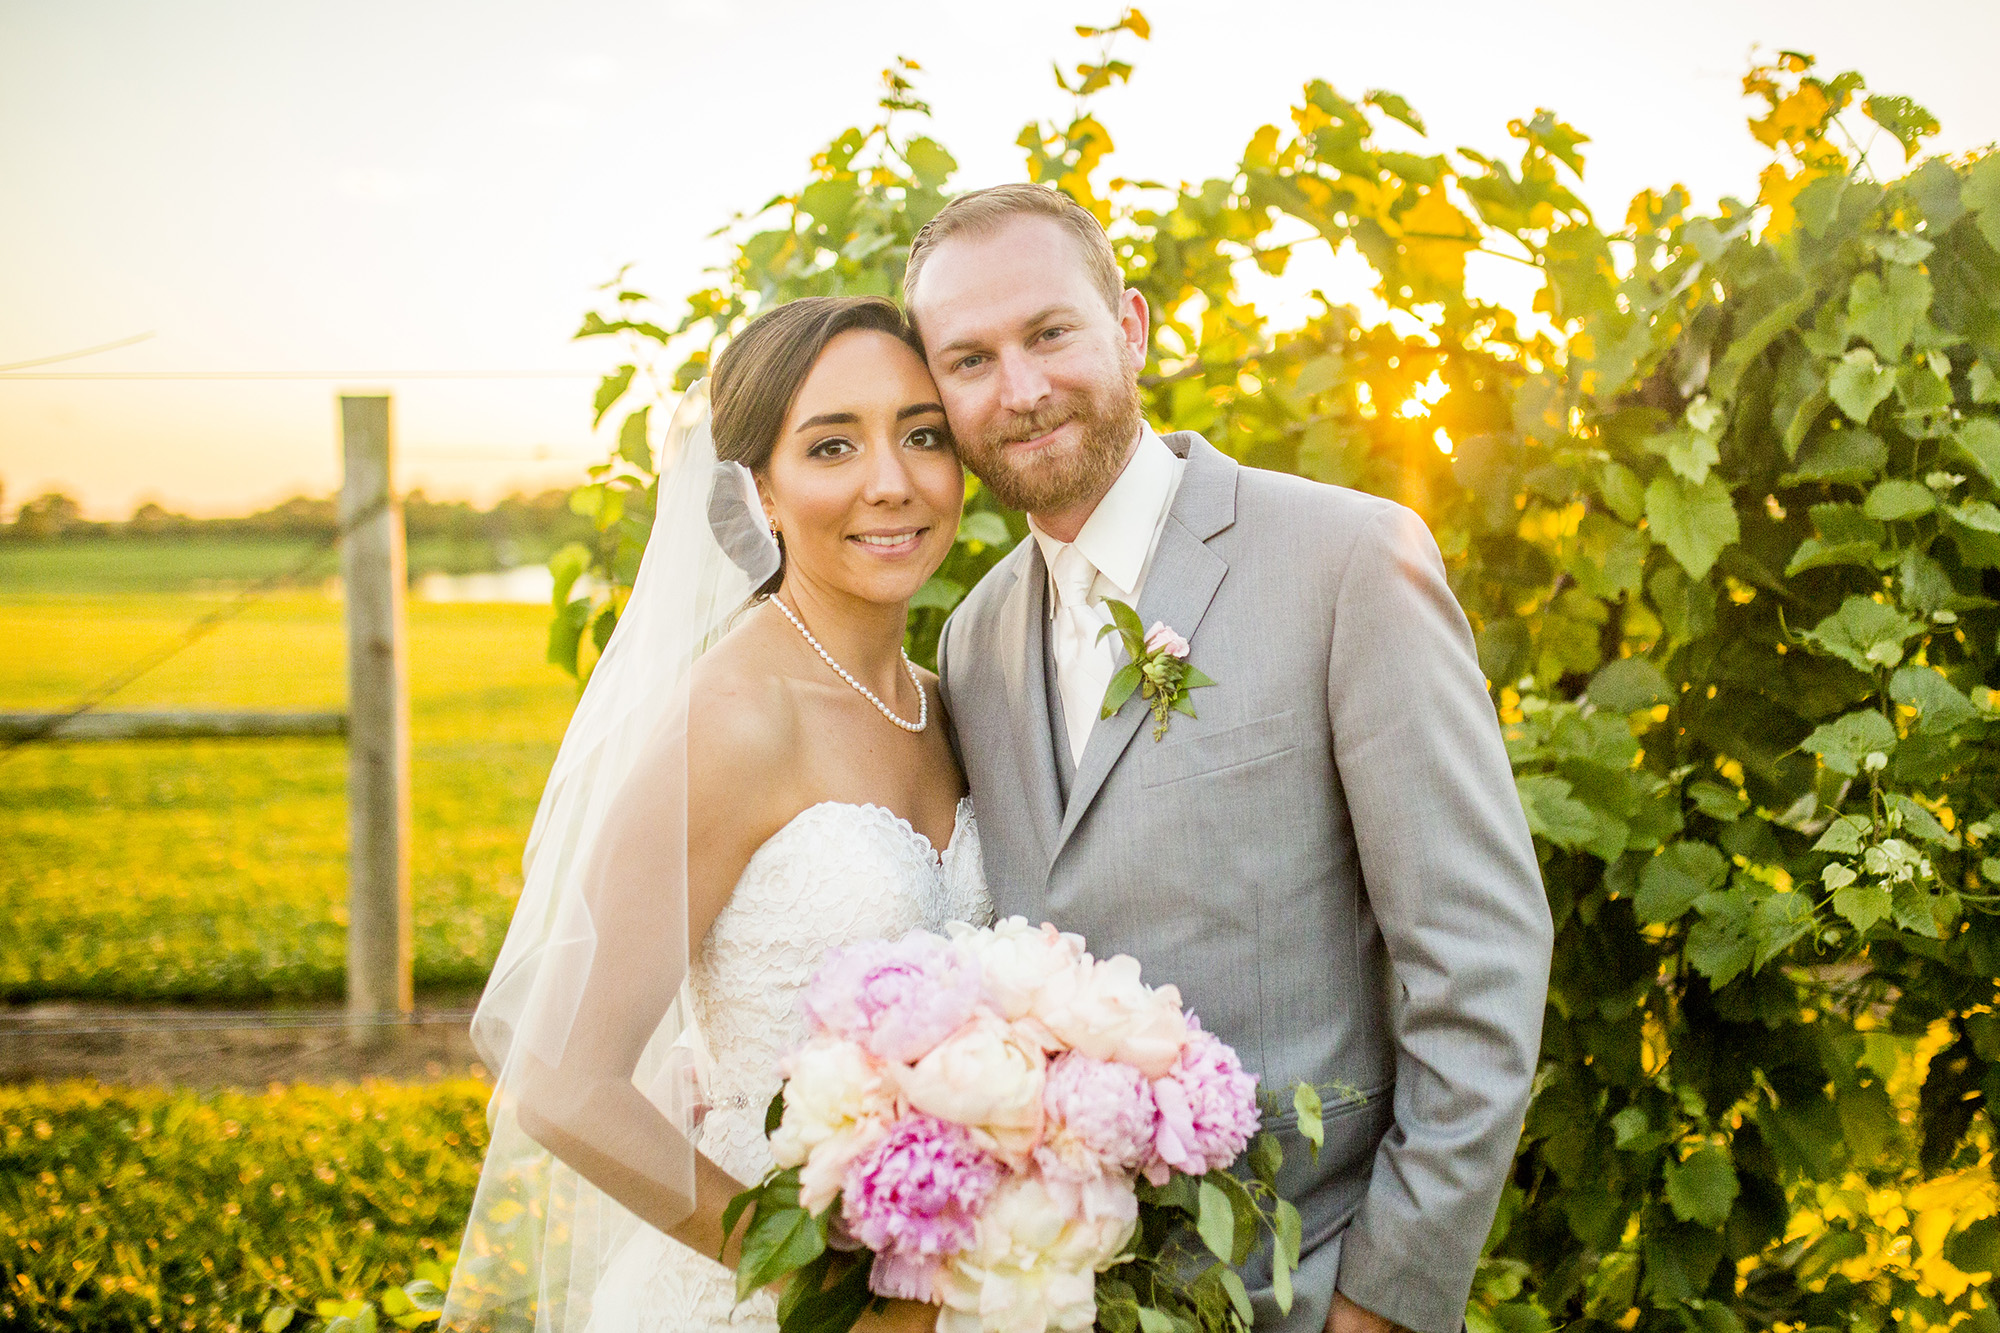 Seriously_Sabrina_Photography_Lexington_Kentucky_Talon_Winery_Wedding_Kjellsen161.jpg